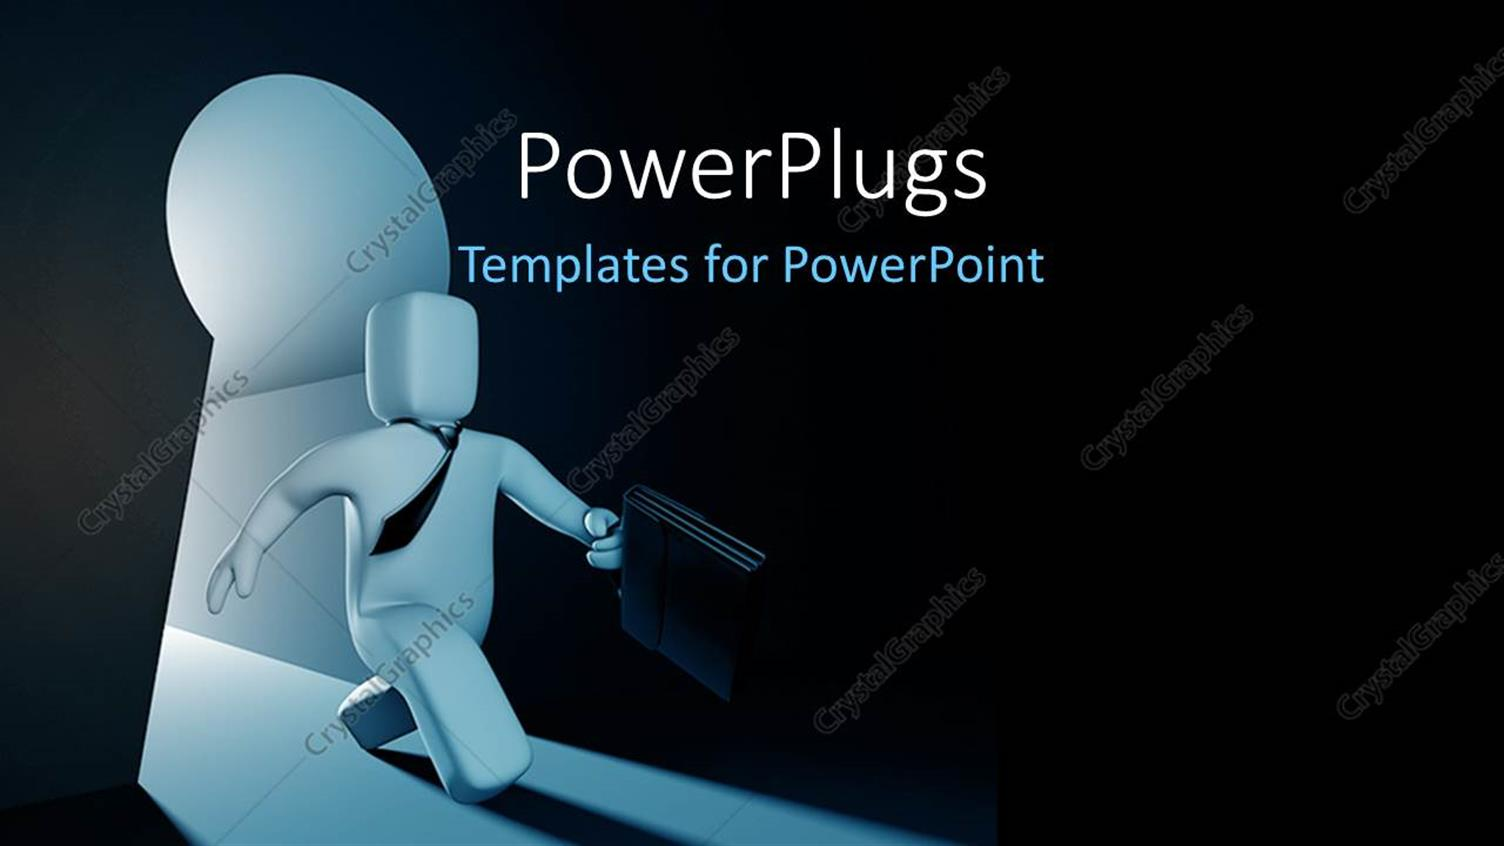 PowerPoint Template Displaying a Person with Darkness in the Background